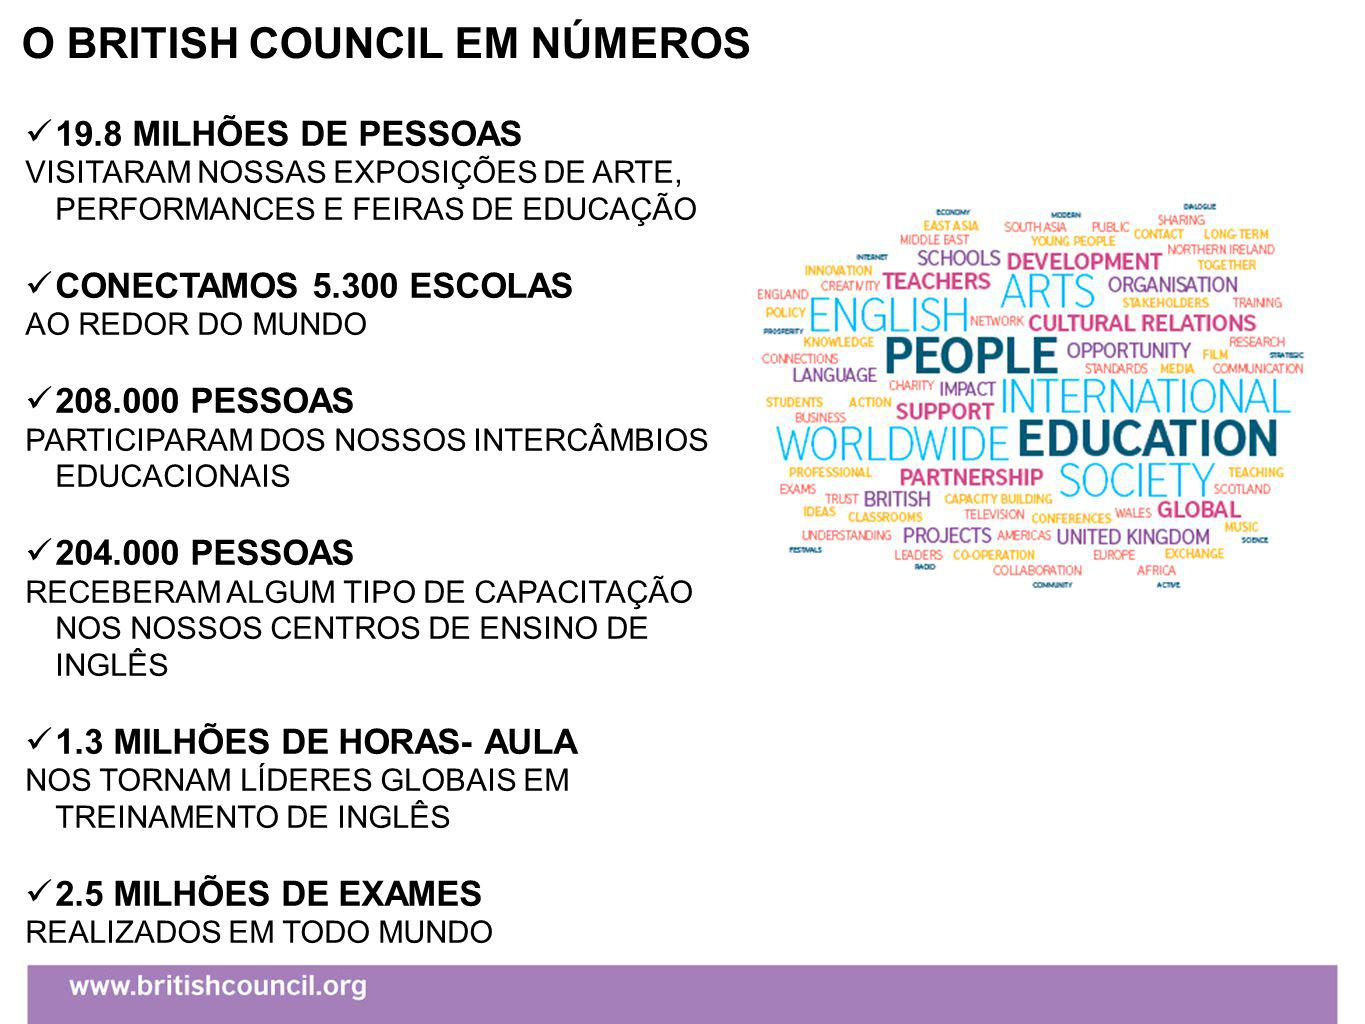 O BRITISH COUNCIL EM NÚMEROS